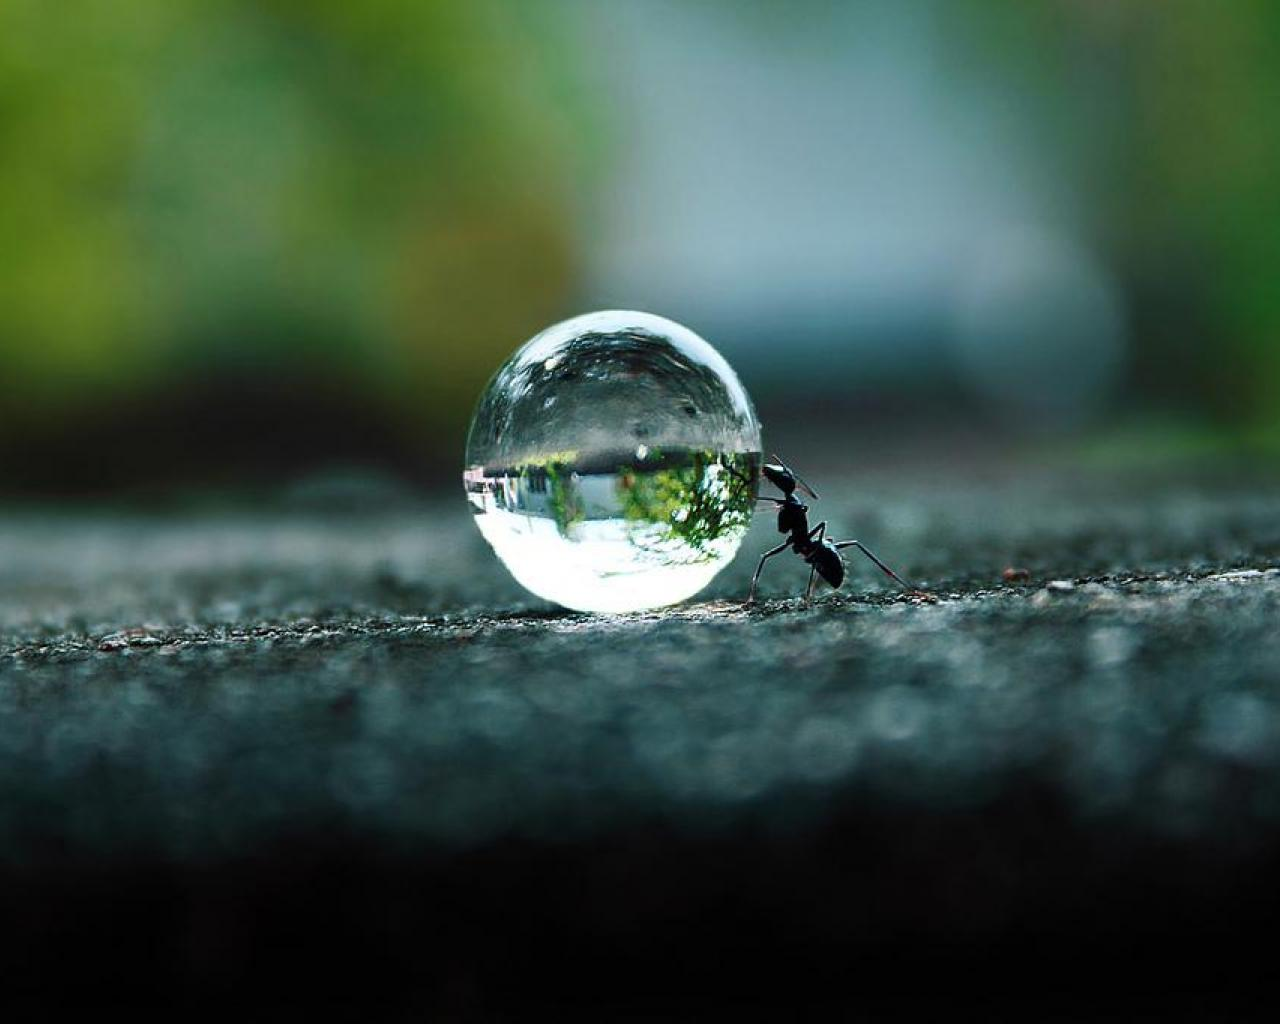 1280x1024 - Ant Wallpapers 3